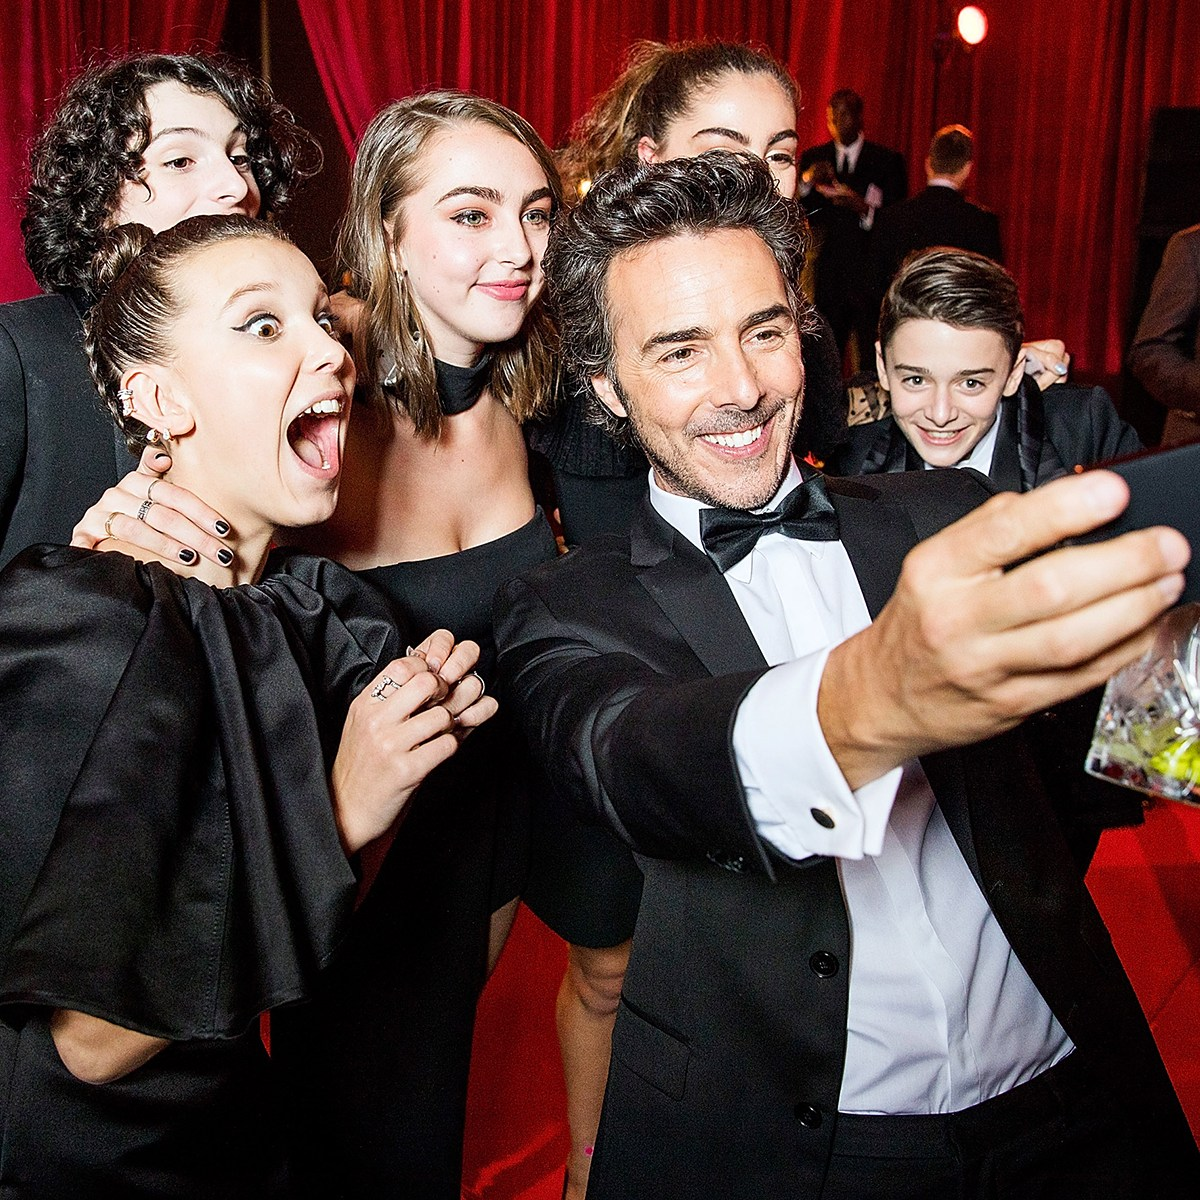 Millie Bobby Brown Finn Wolfhard Shawn Levy Noah Schnapp Netflix Golden Globes after party 2018